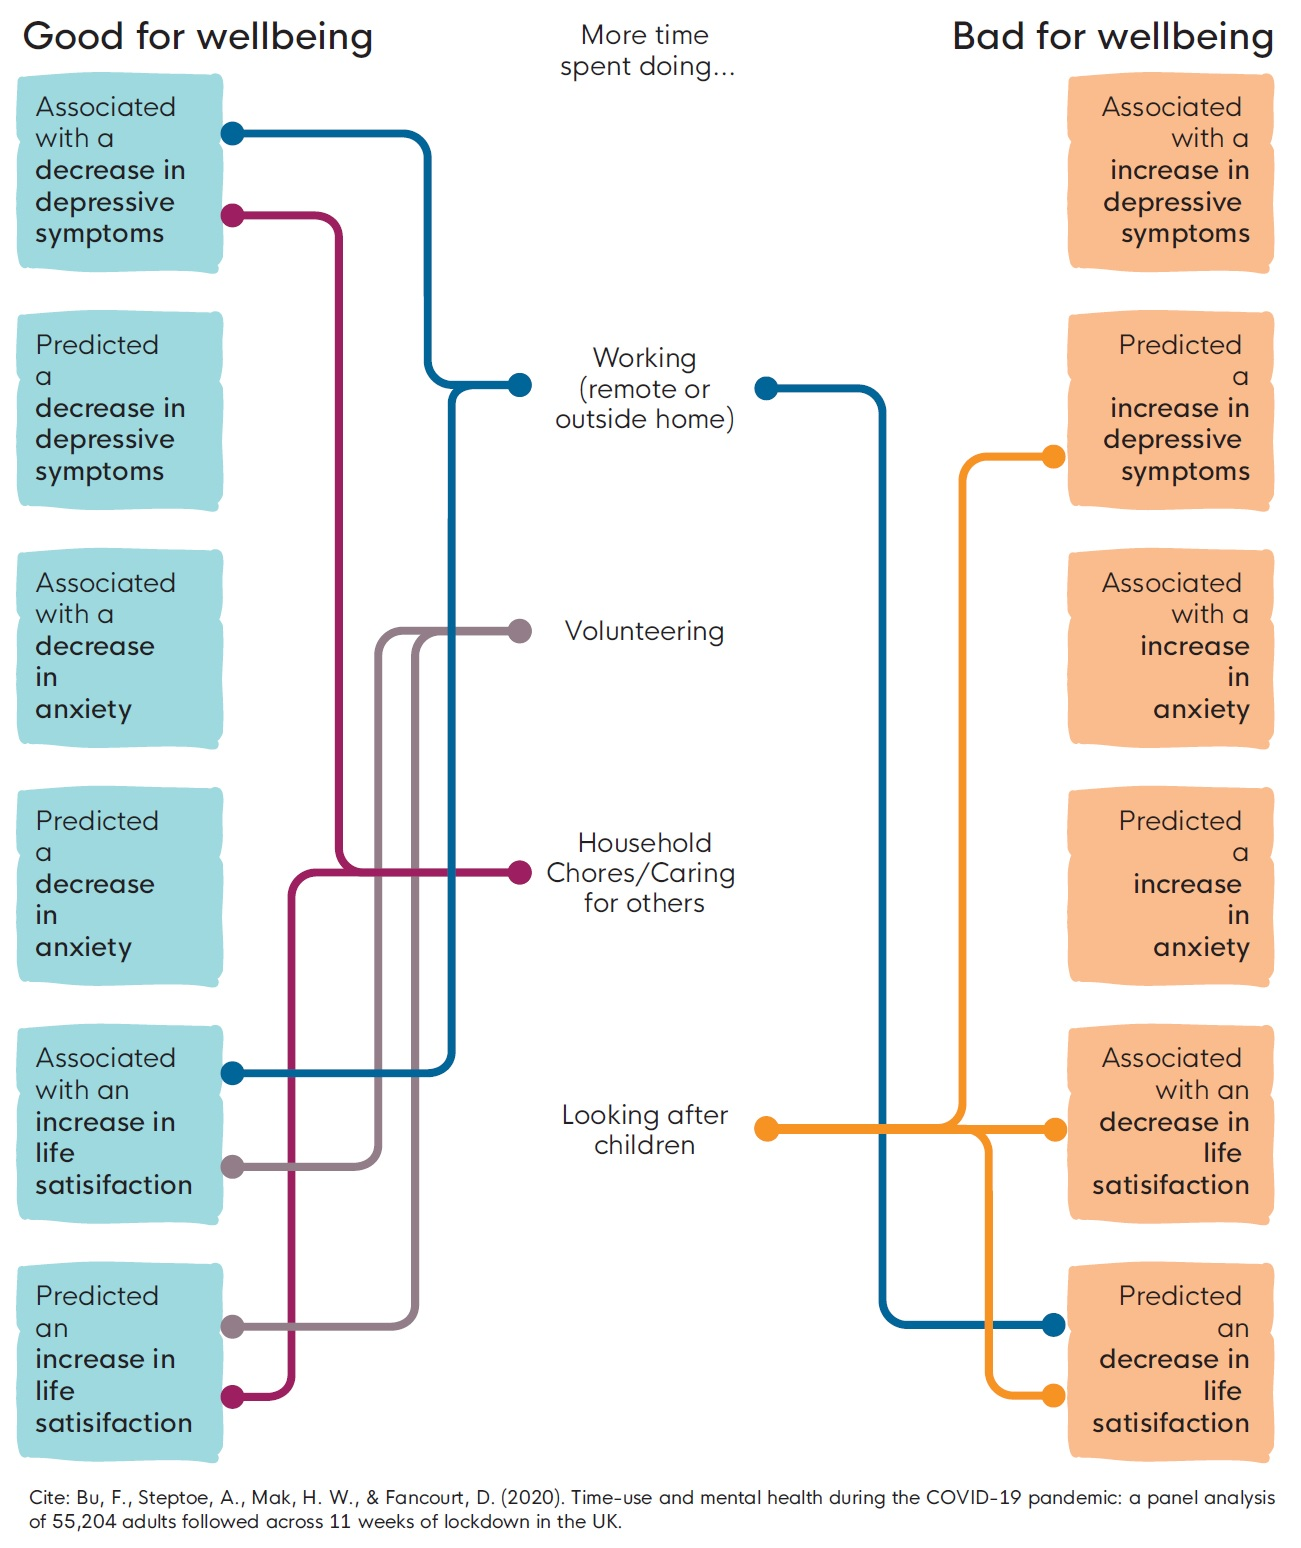 Changes in time use on different activities and the associated change in wellbeing (part 1)